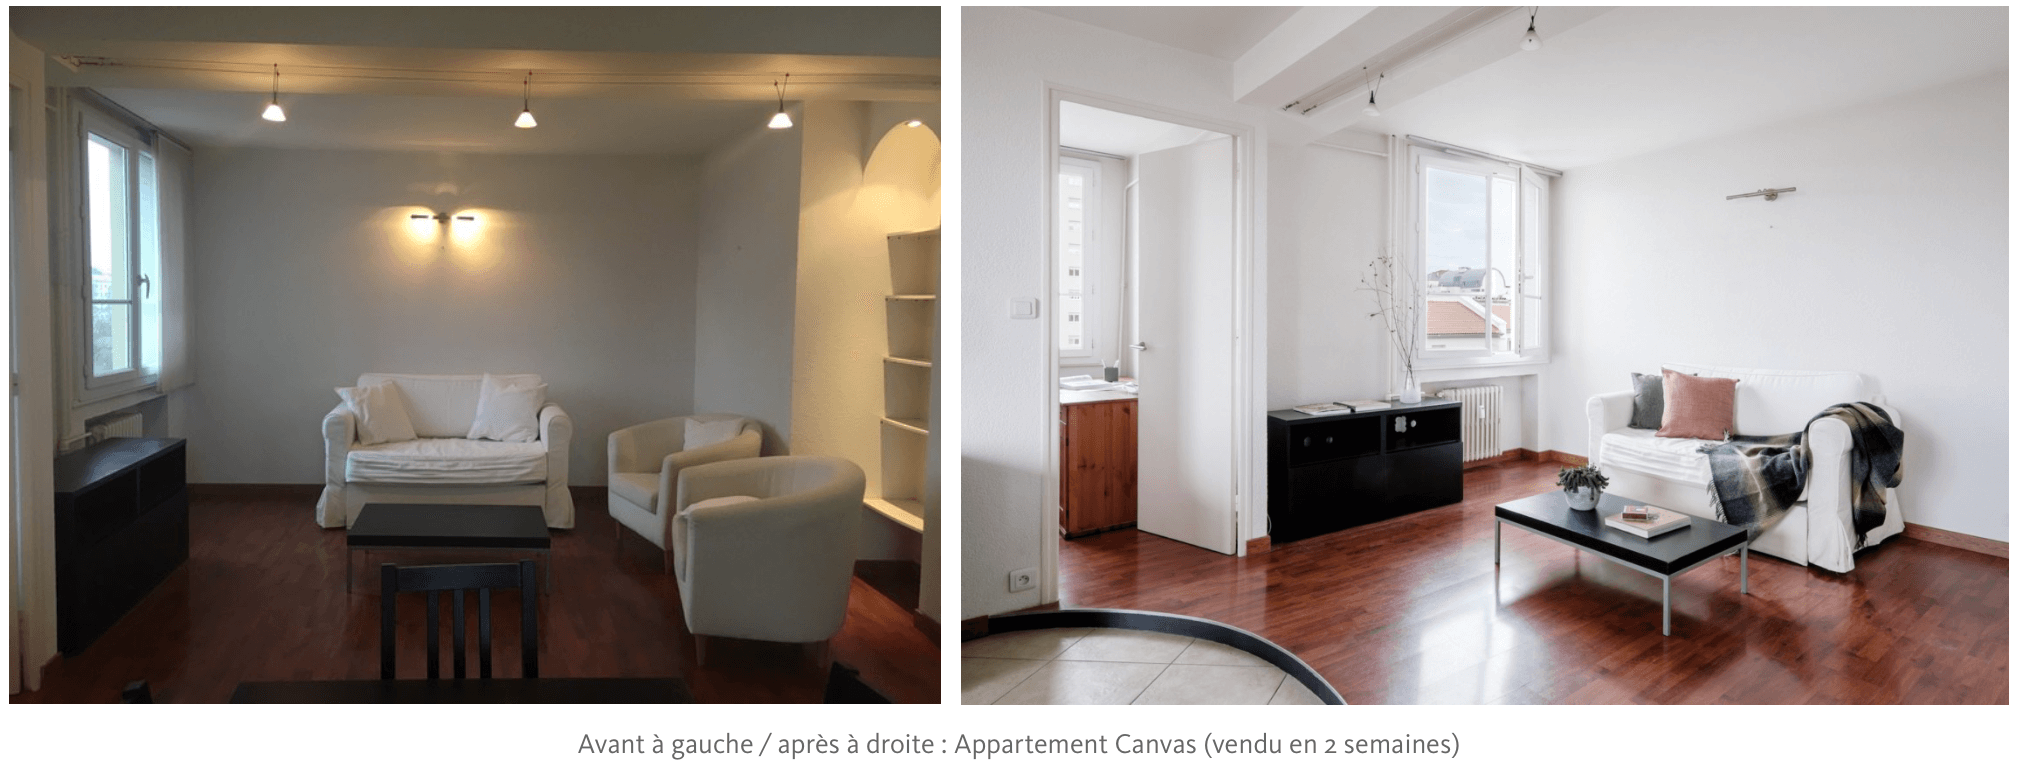 bumper-blog-news-immobilier-lyon-appartement-vente-achat-investir-homestaging-design-decoration-lifestyle-art-17.png